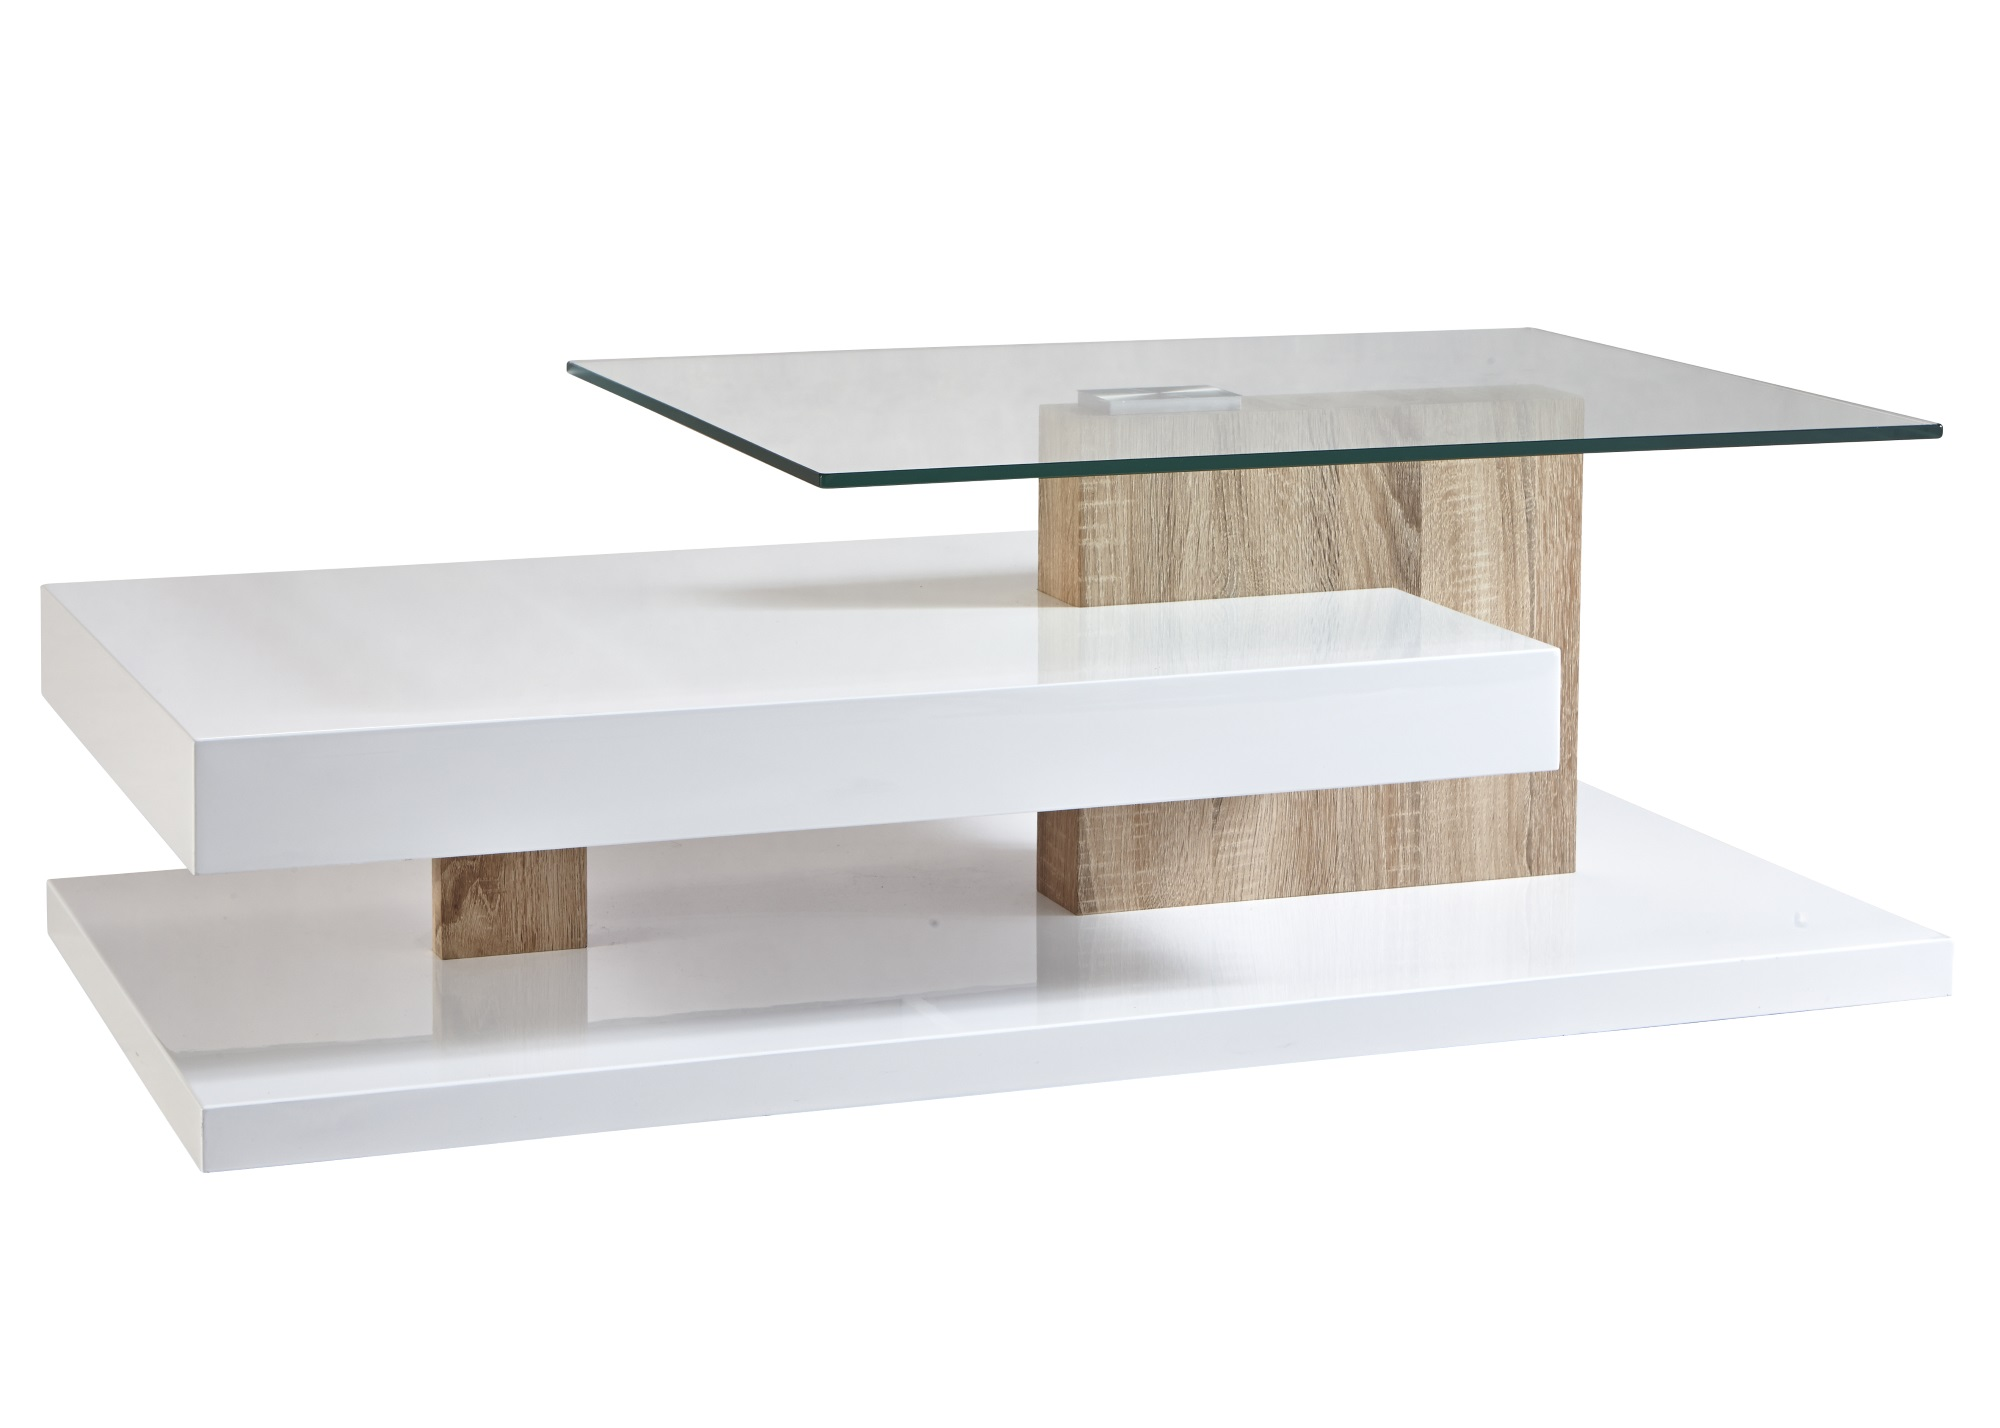 Table Basse Bois Et Verre Table Basse Contemporaine Rectangulaire Bois Verre Cyriane